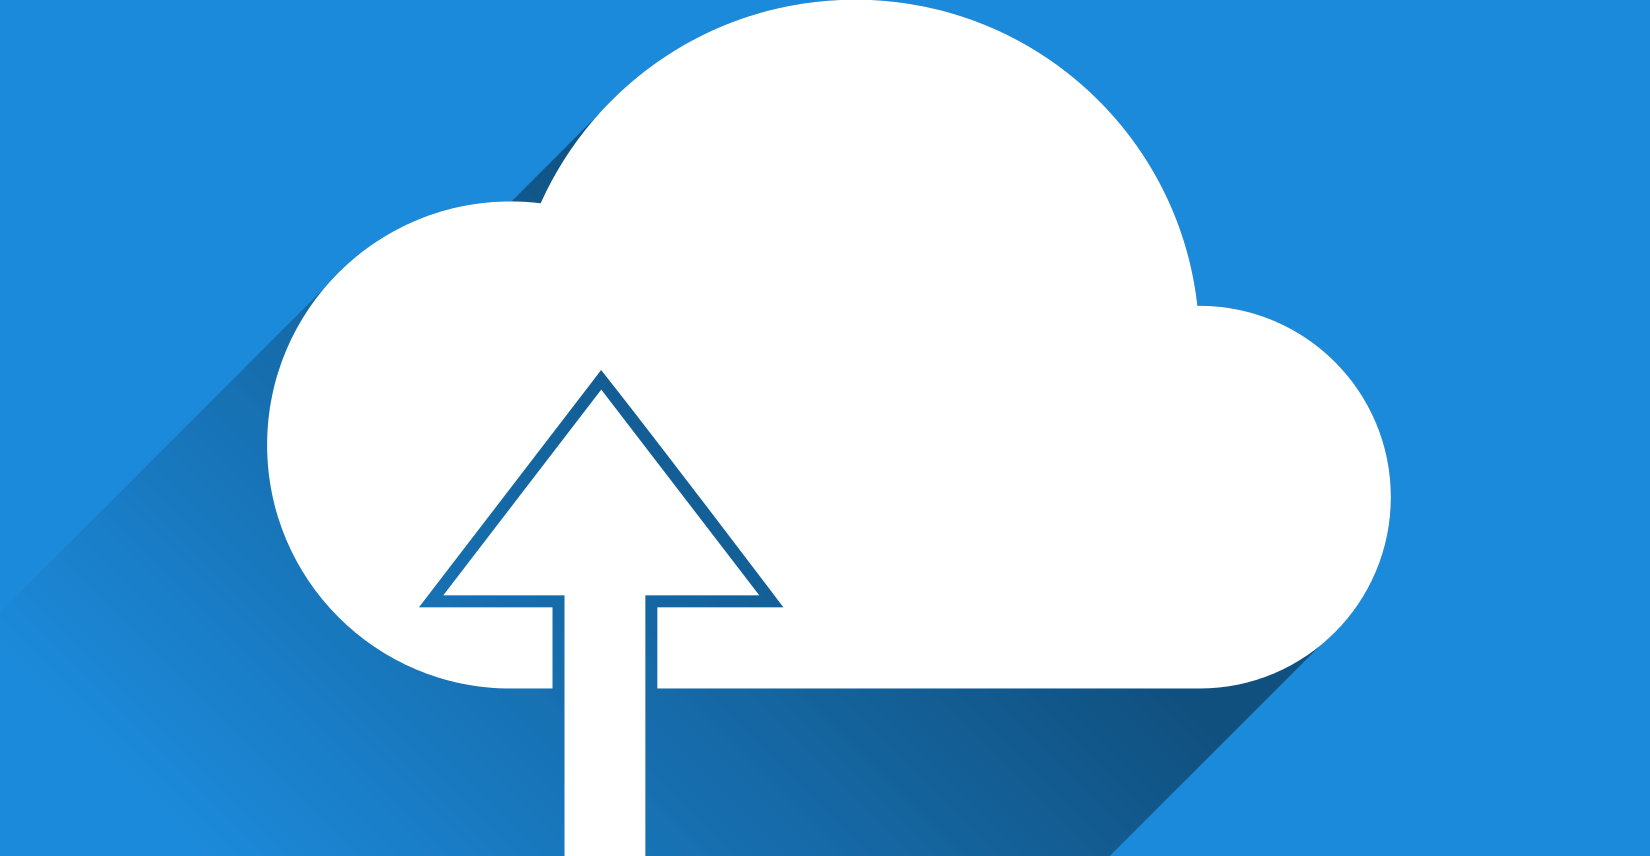 Publishing to the cloud